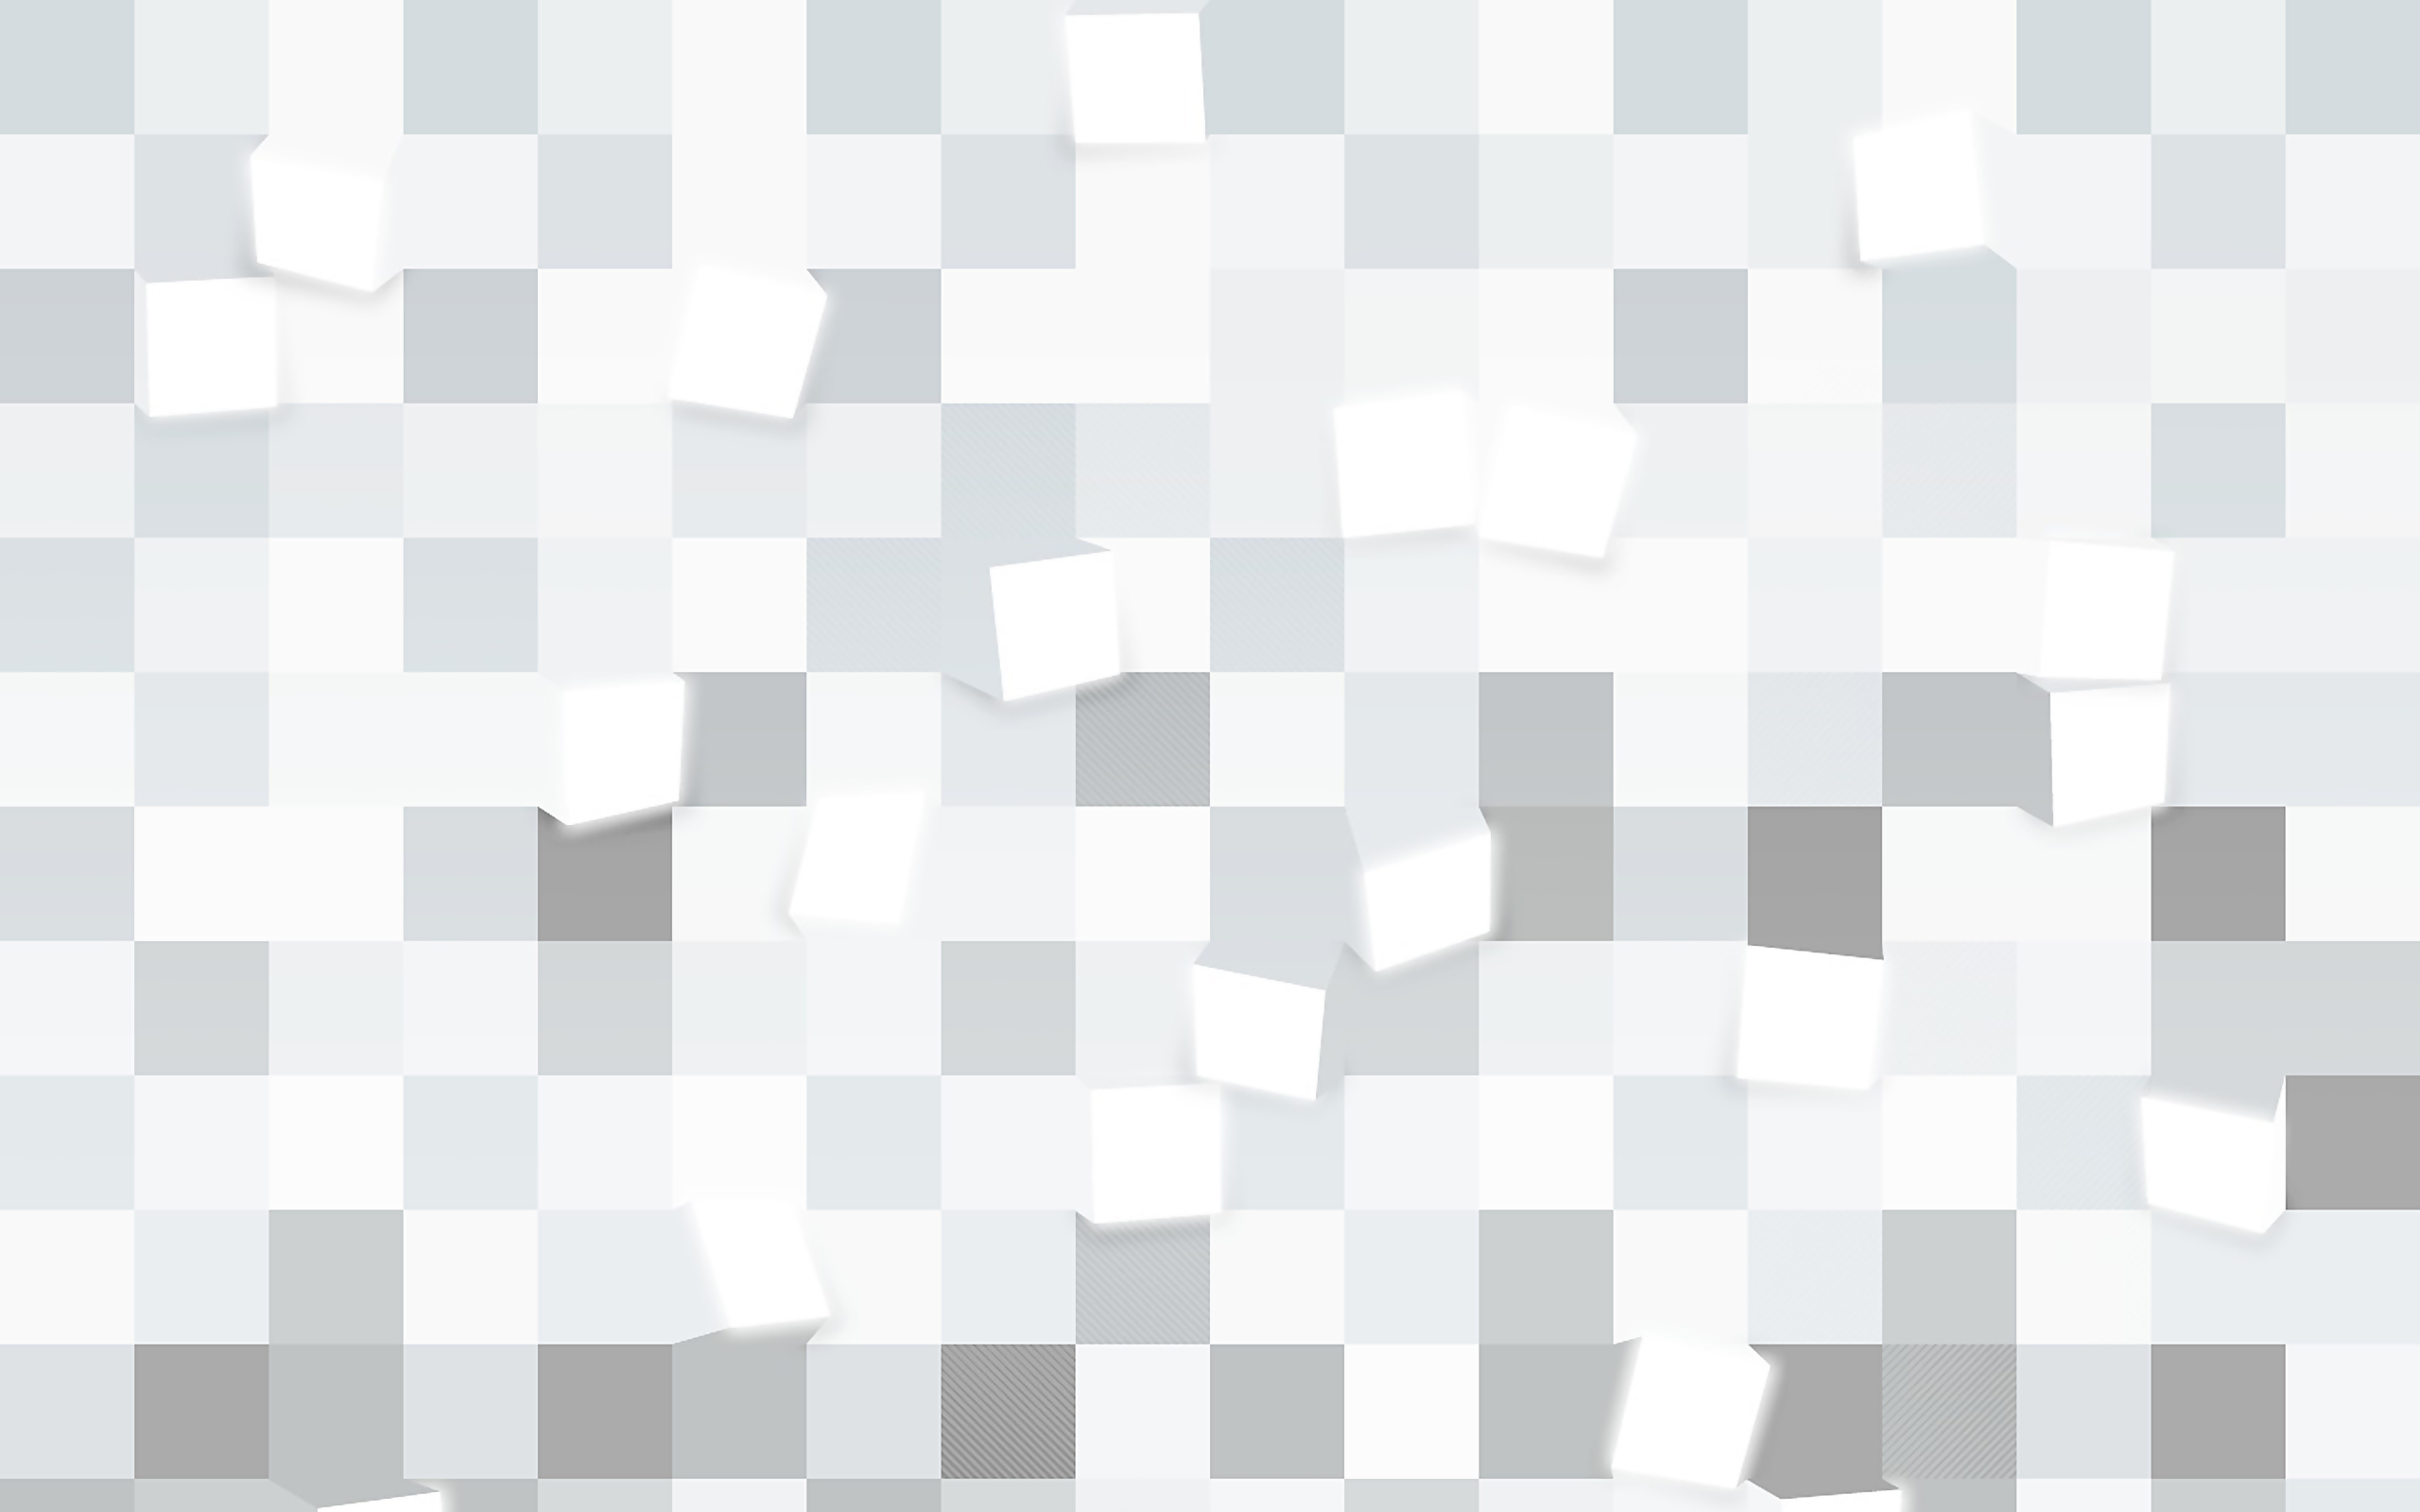 White Abstract Wallpaper 47836 2560x1600px 2560x1600